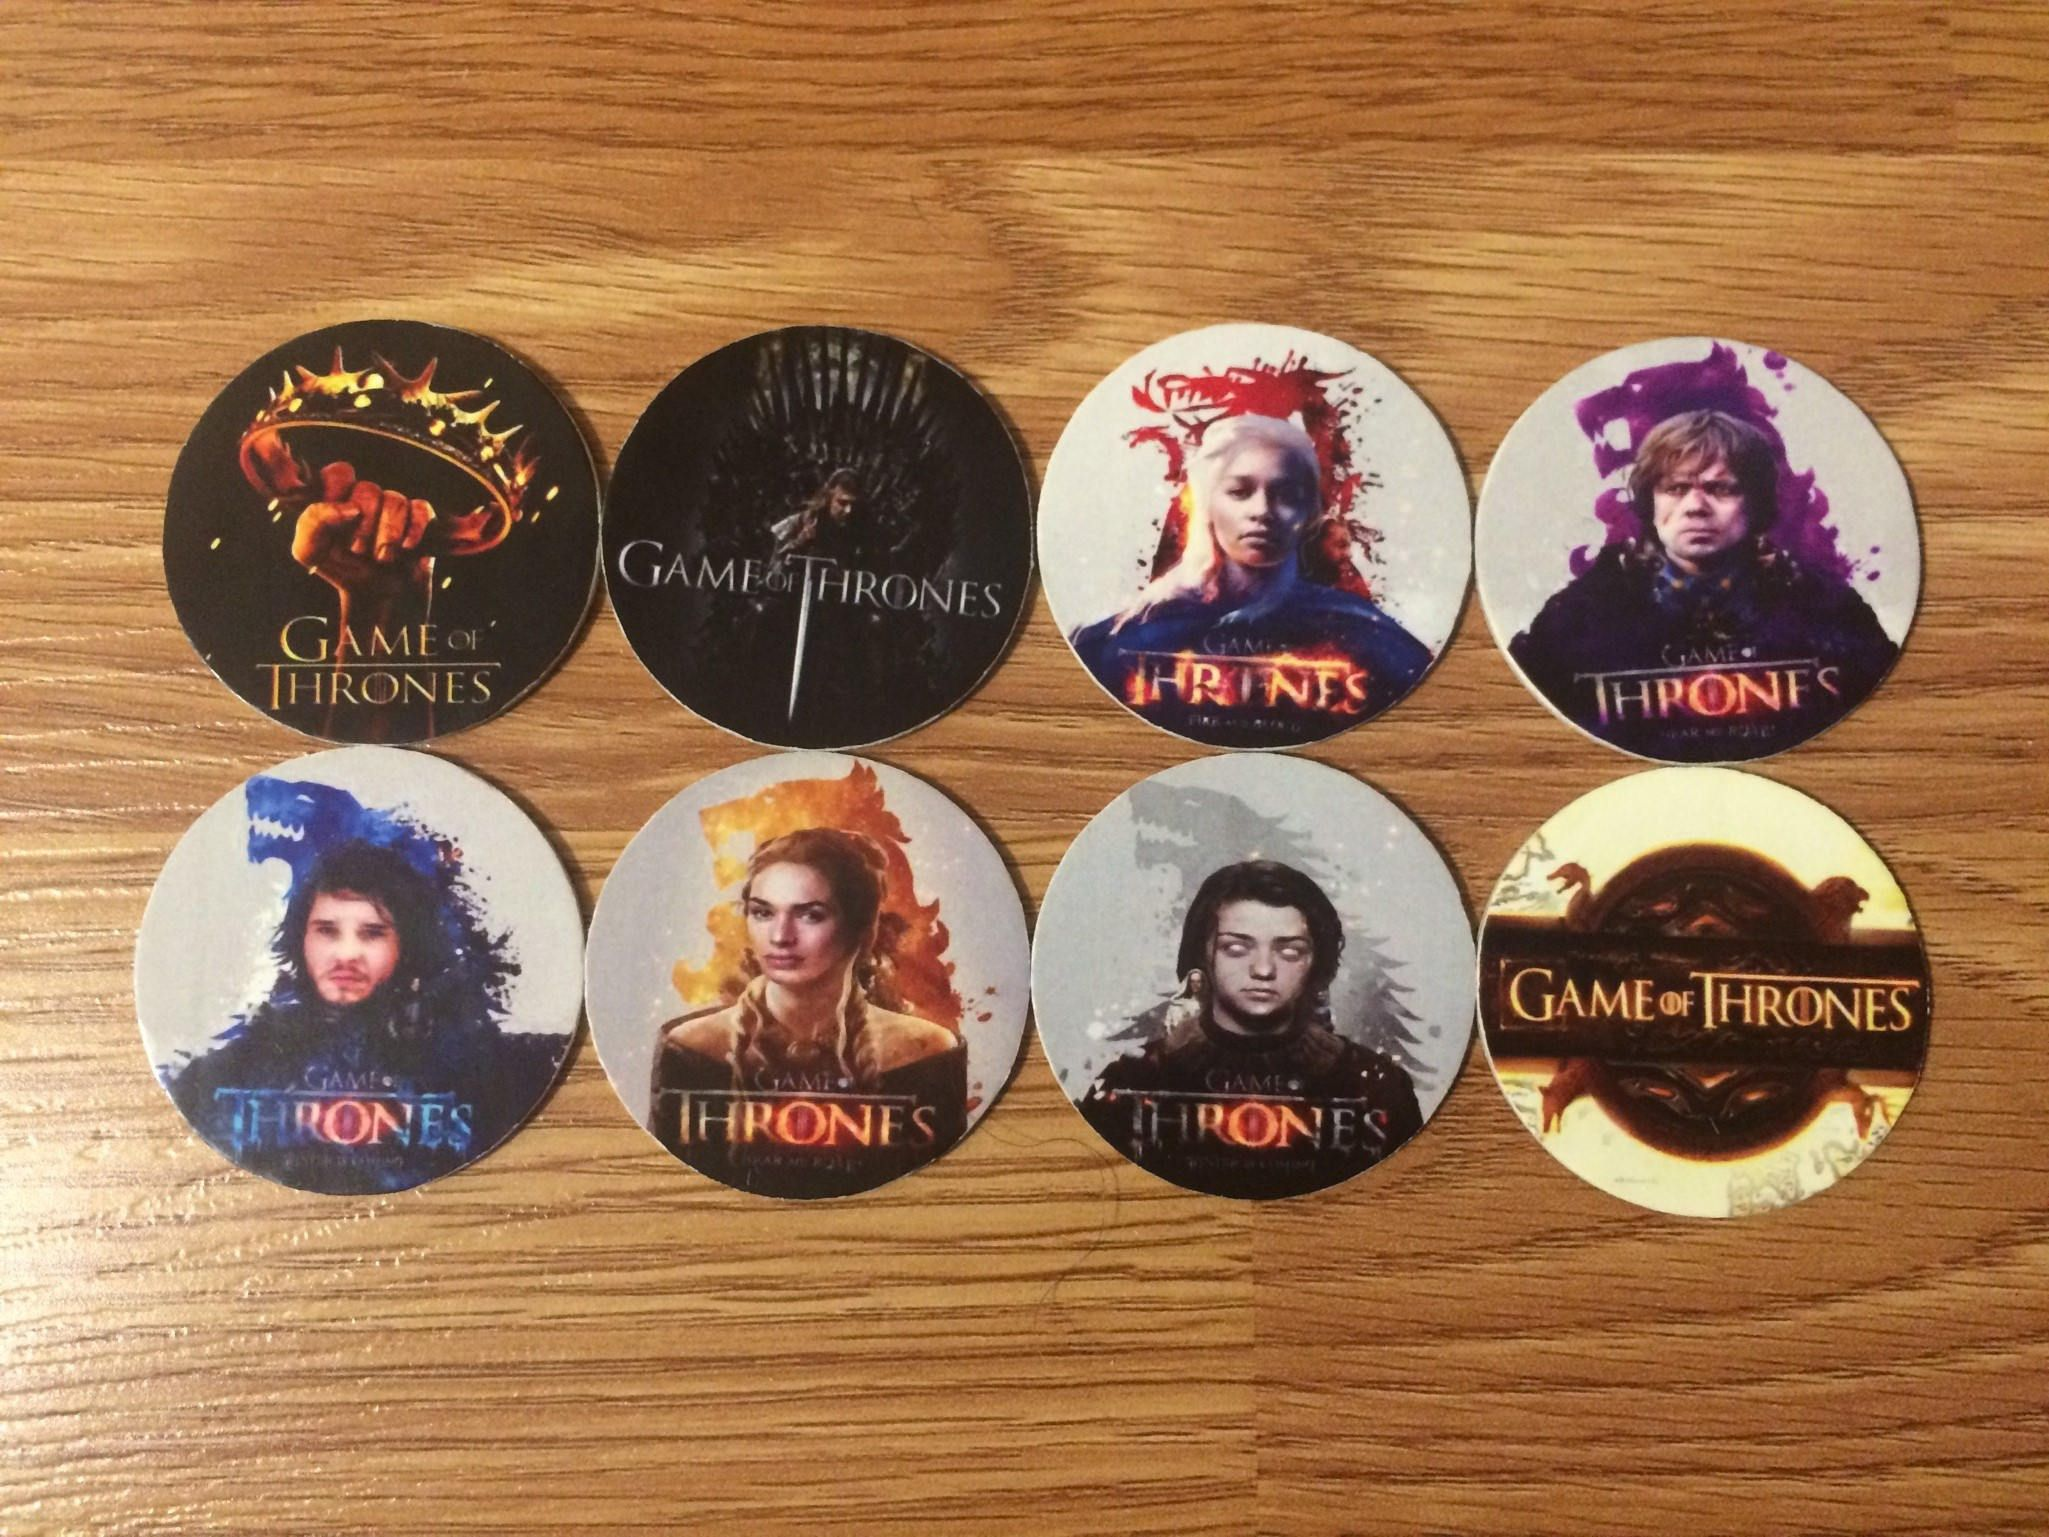 Pin by Underground Artwork on Pogs Collection | Game of